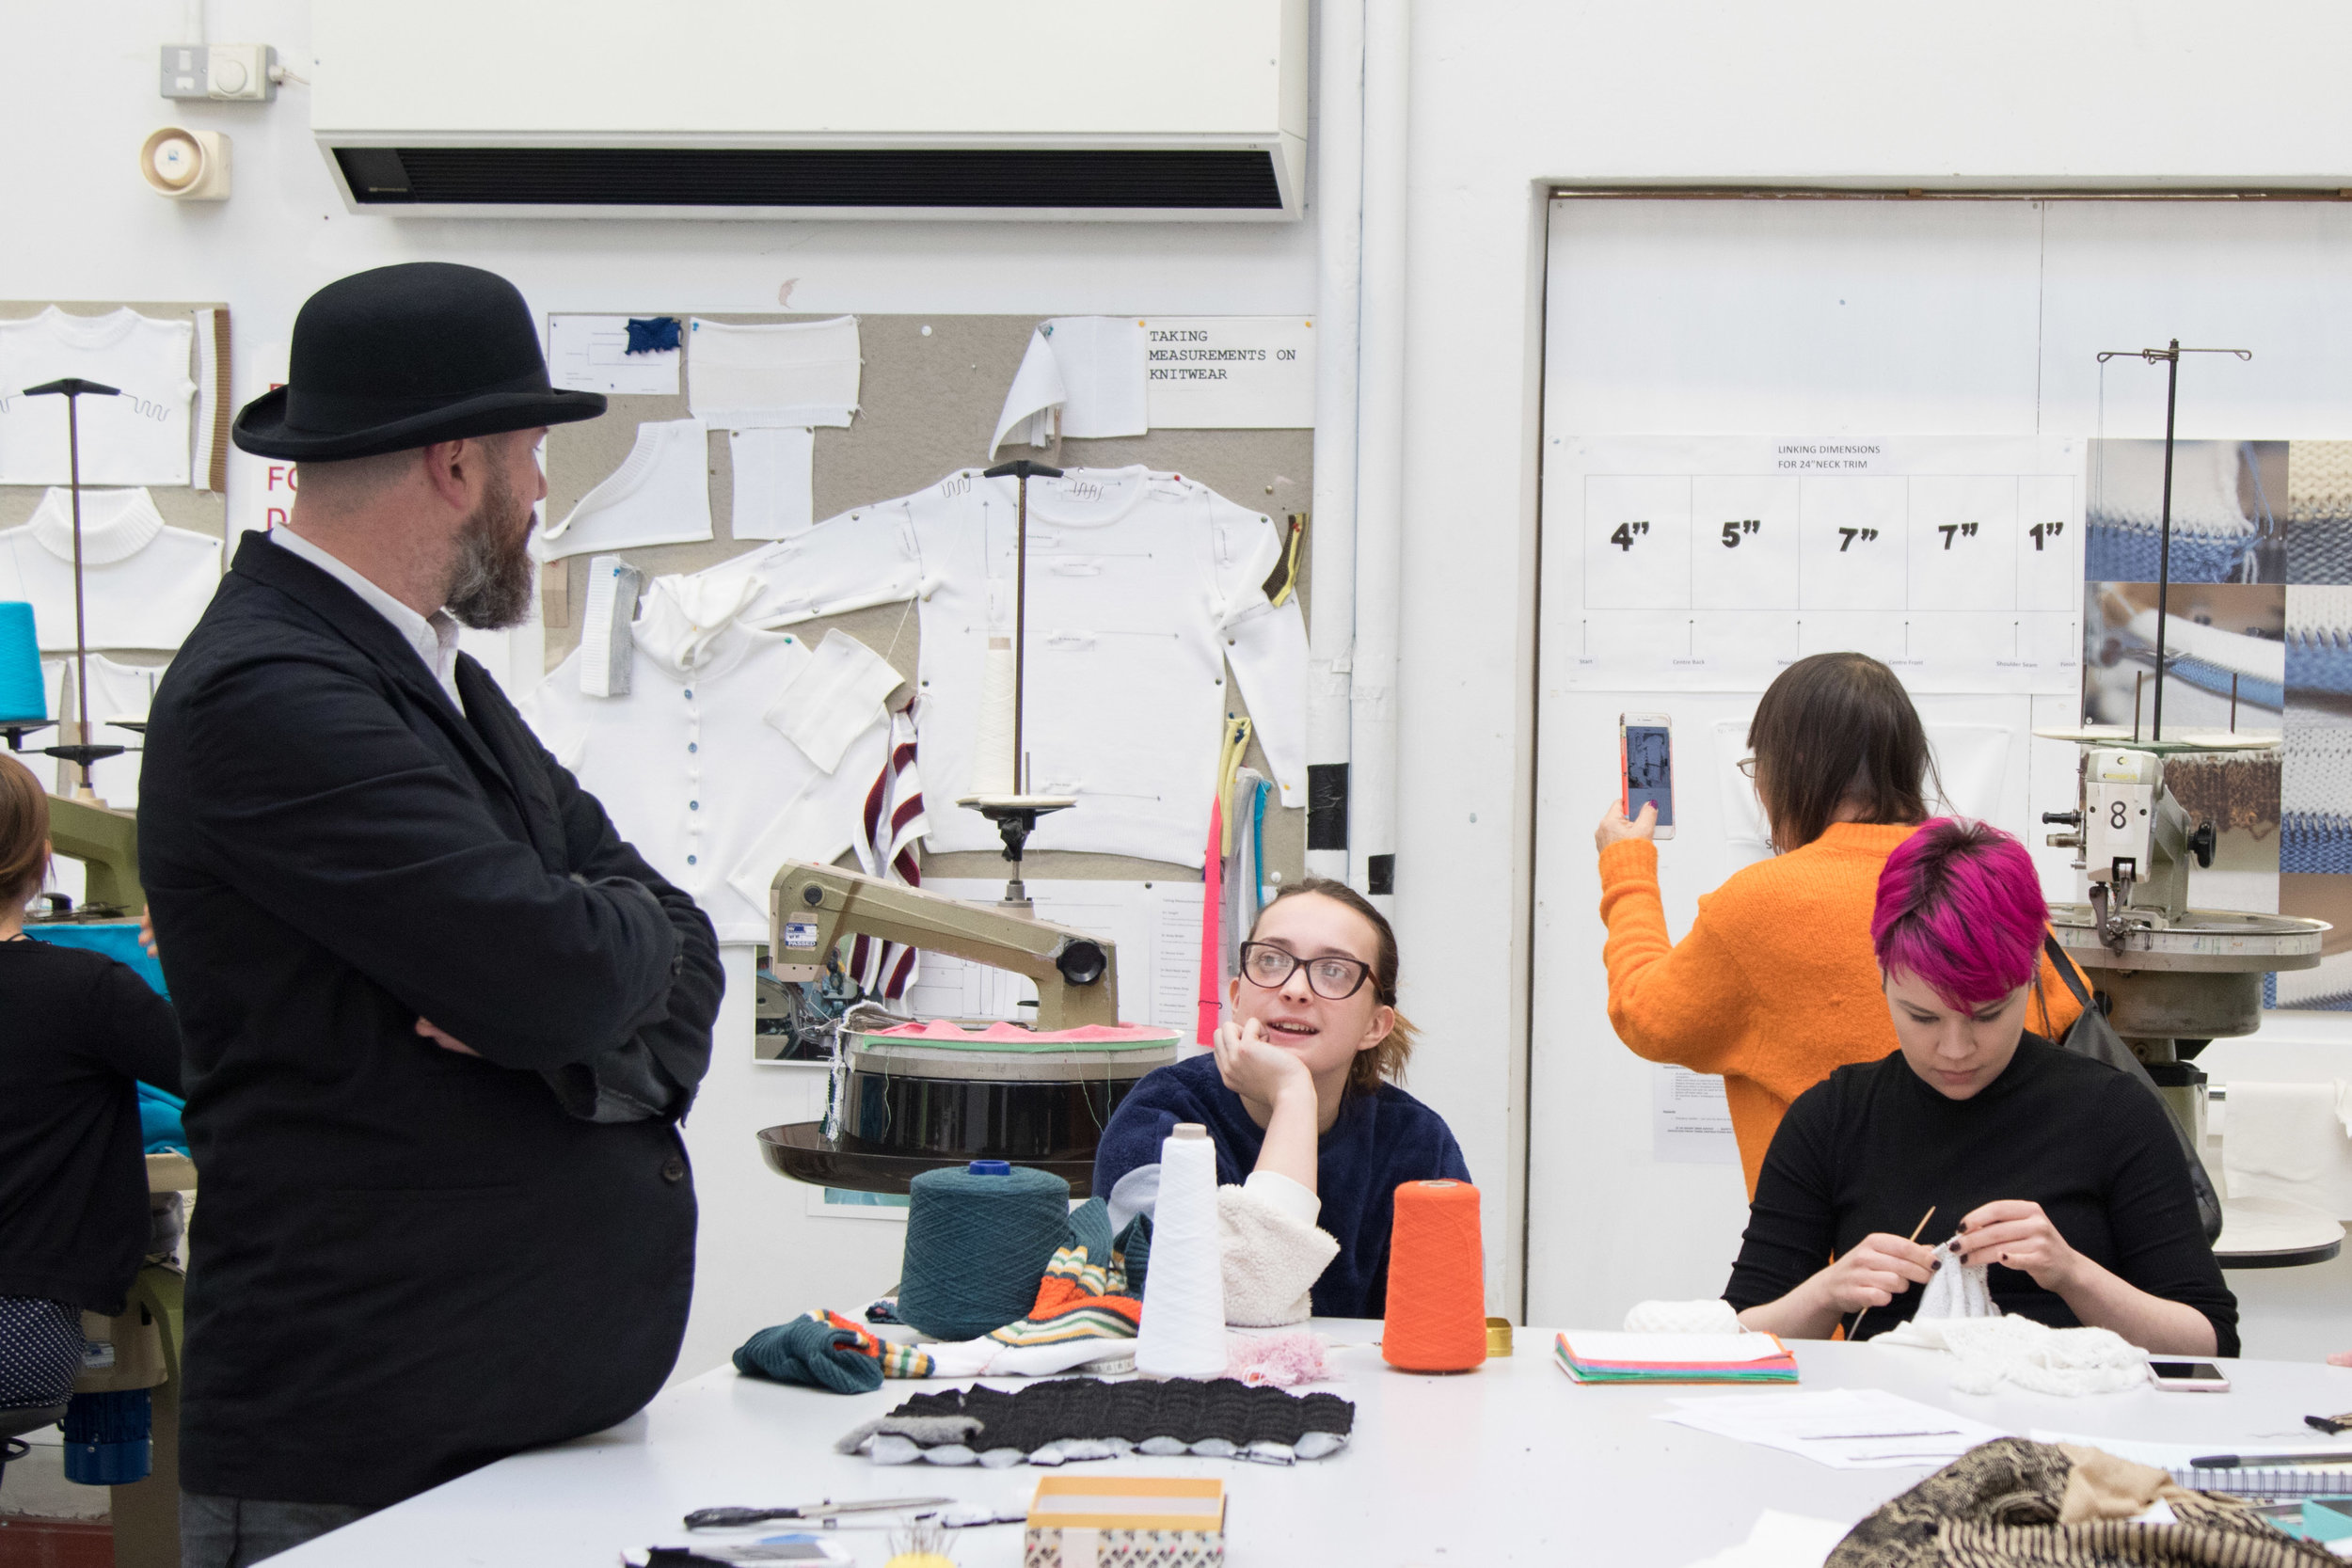 Martyn talking to students 2, Nottingham Masterclass, Image by Richard Hargrave.jpg